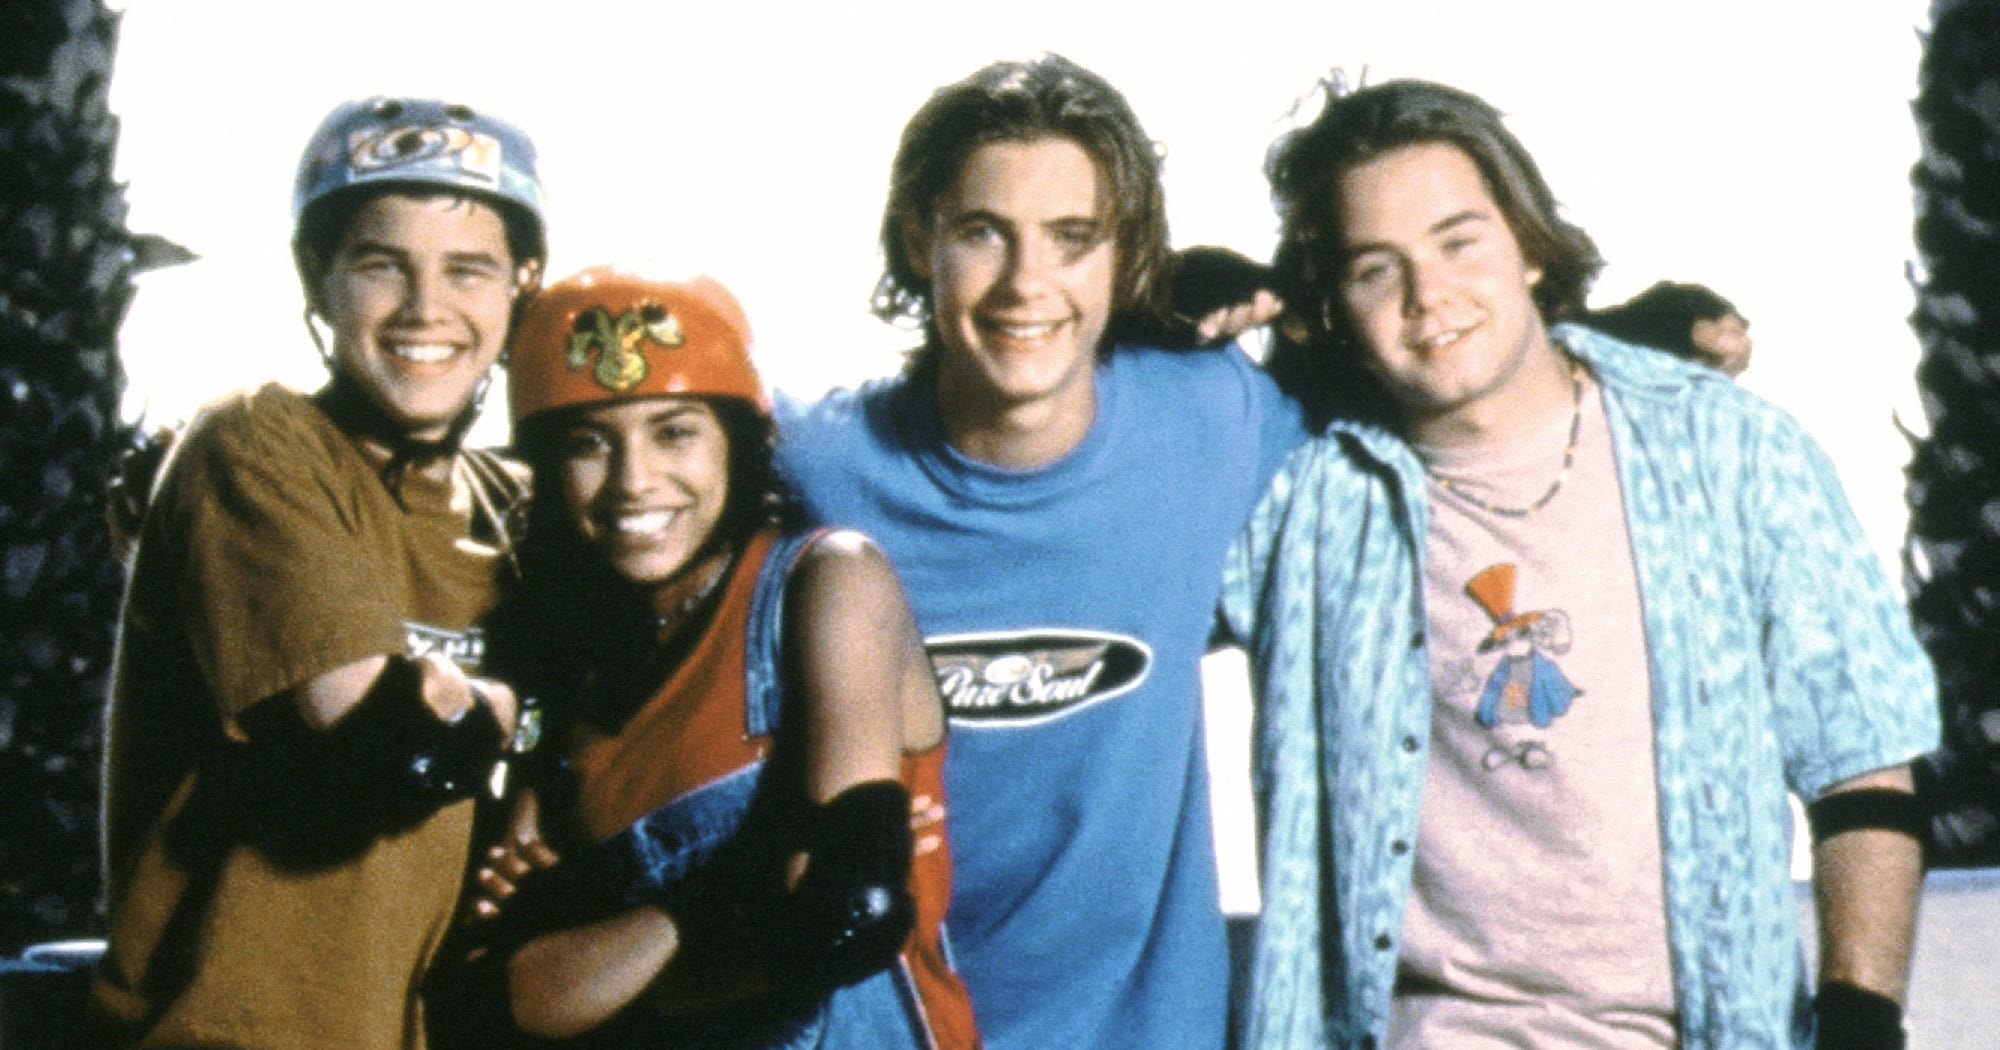 The 20 Greatest Disney Channel Original Movies, Ever